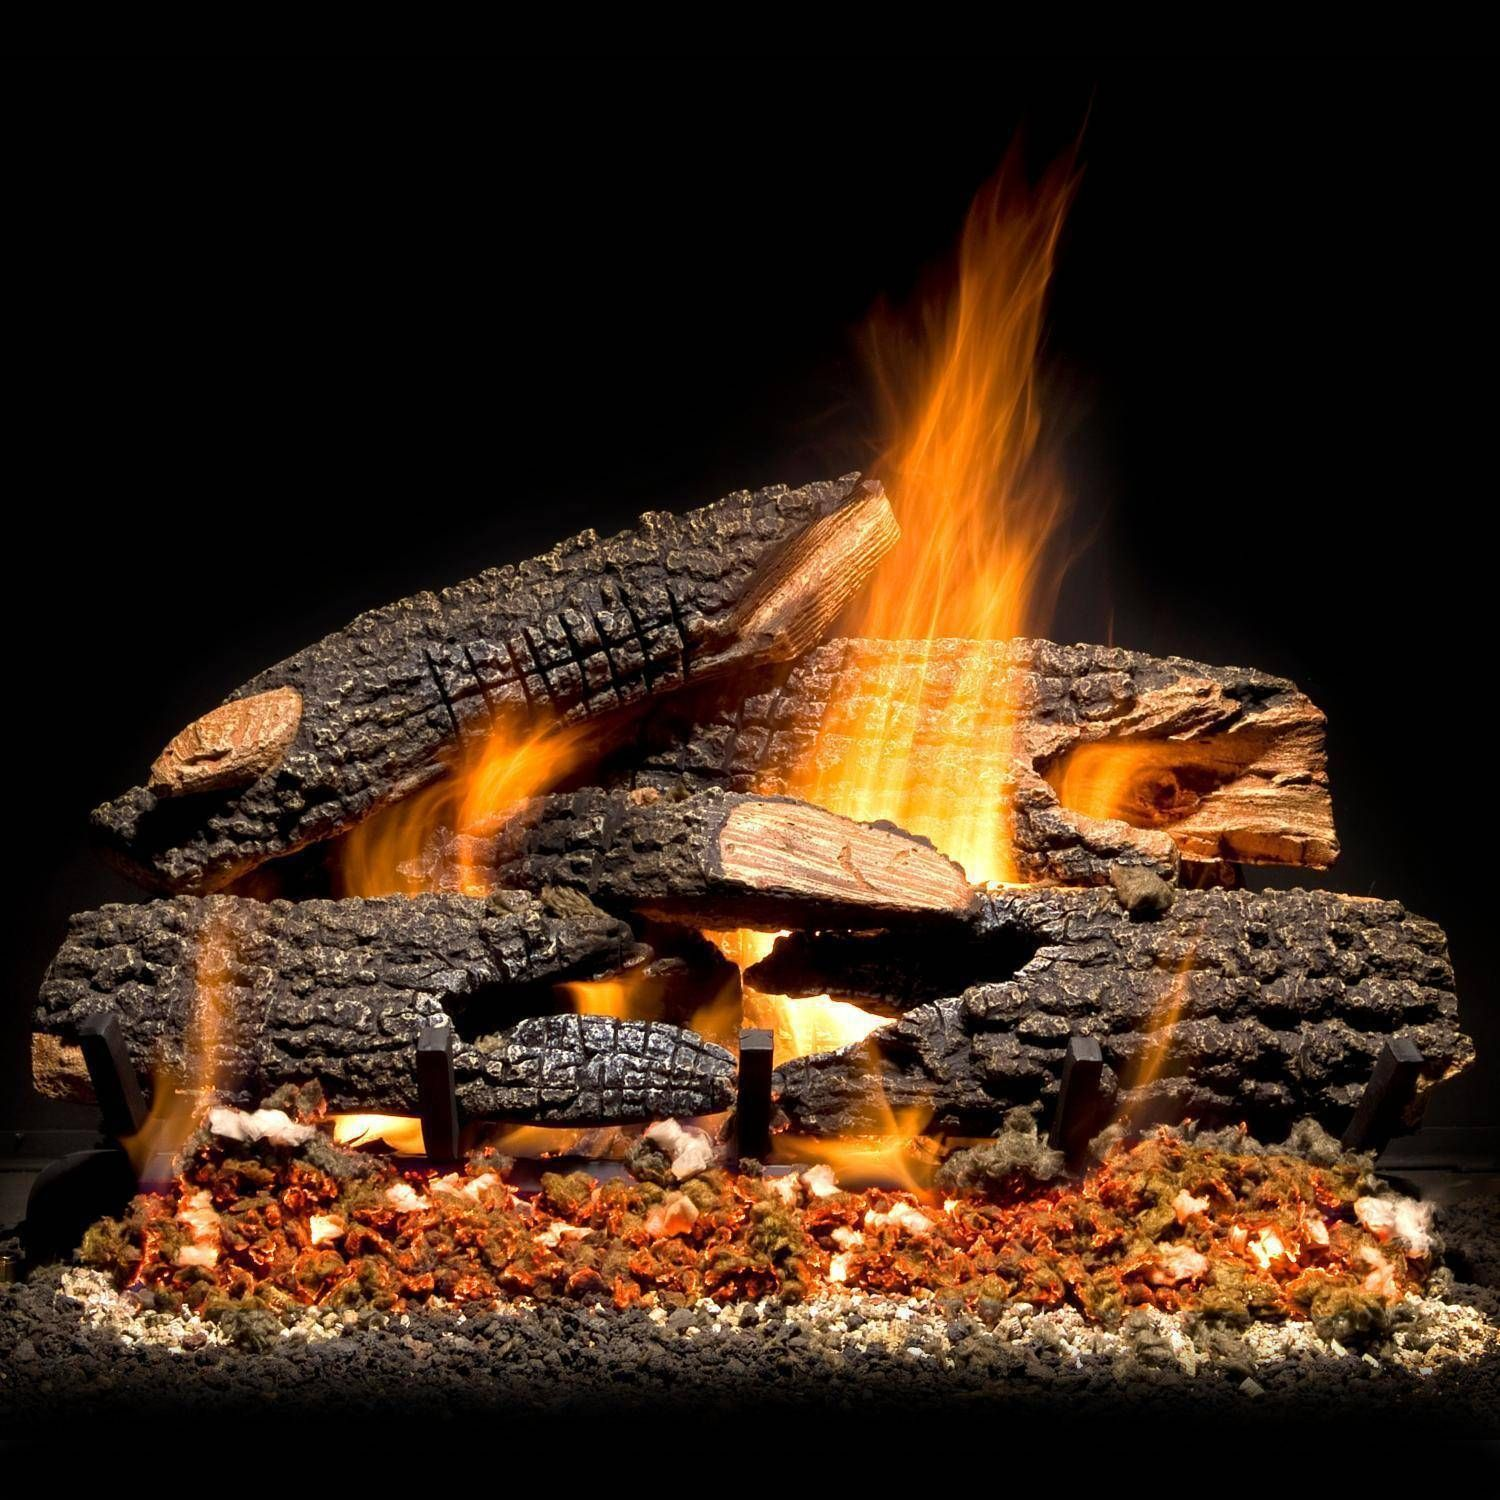 30 In Extra Large Natural Gas Fireplace Logs Set Vented Decorative